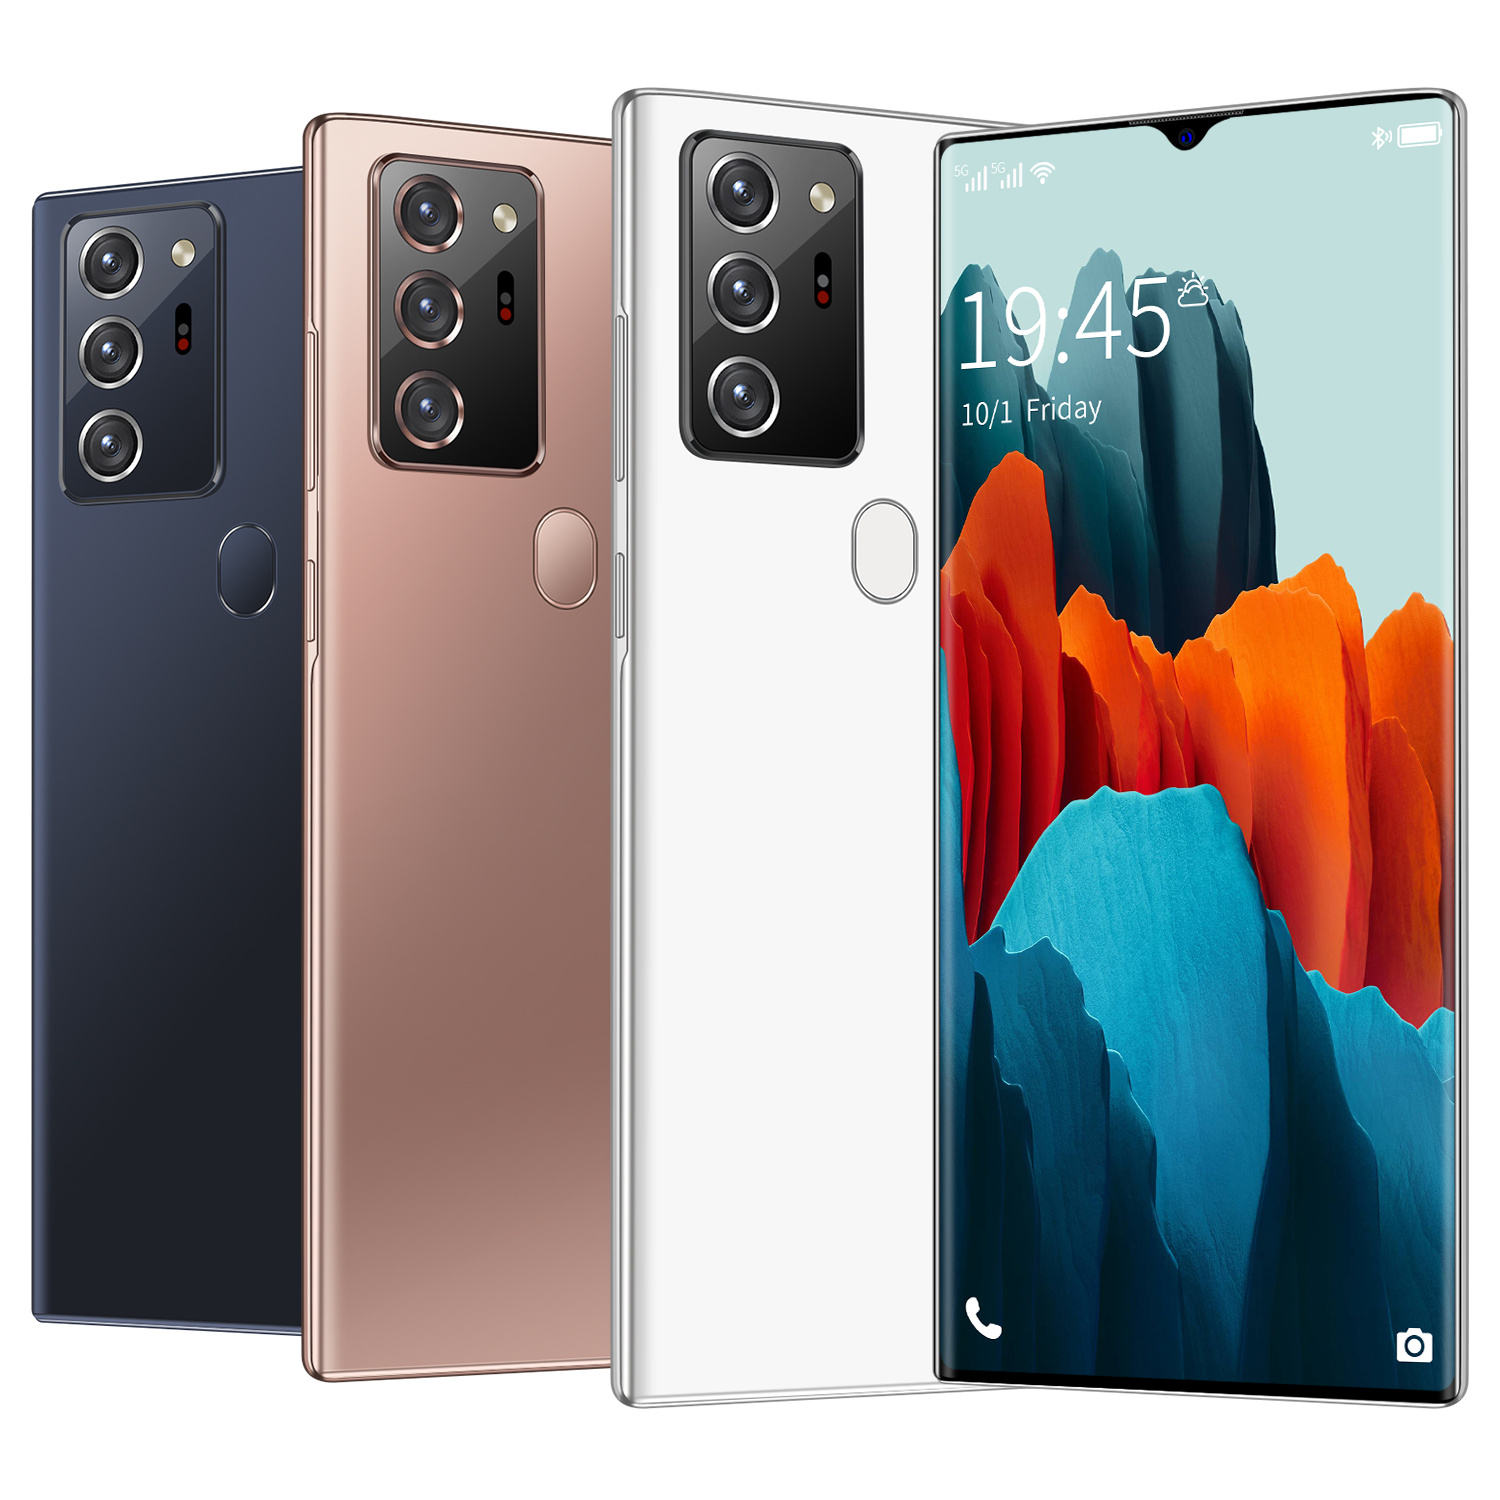 Big Drop Screen Note30 + 6.9 Inch <span class=keywords><strong>Mobiele</strong></span> <span class=keywords><strong>Telefoon</strong></span> 8 + 256Gb Global Language Android <span class=keywords><strong>Telefoon</strong></span> Goedkope Prijs